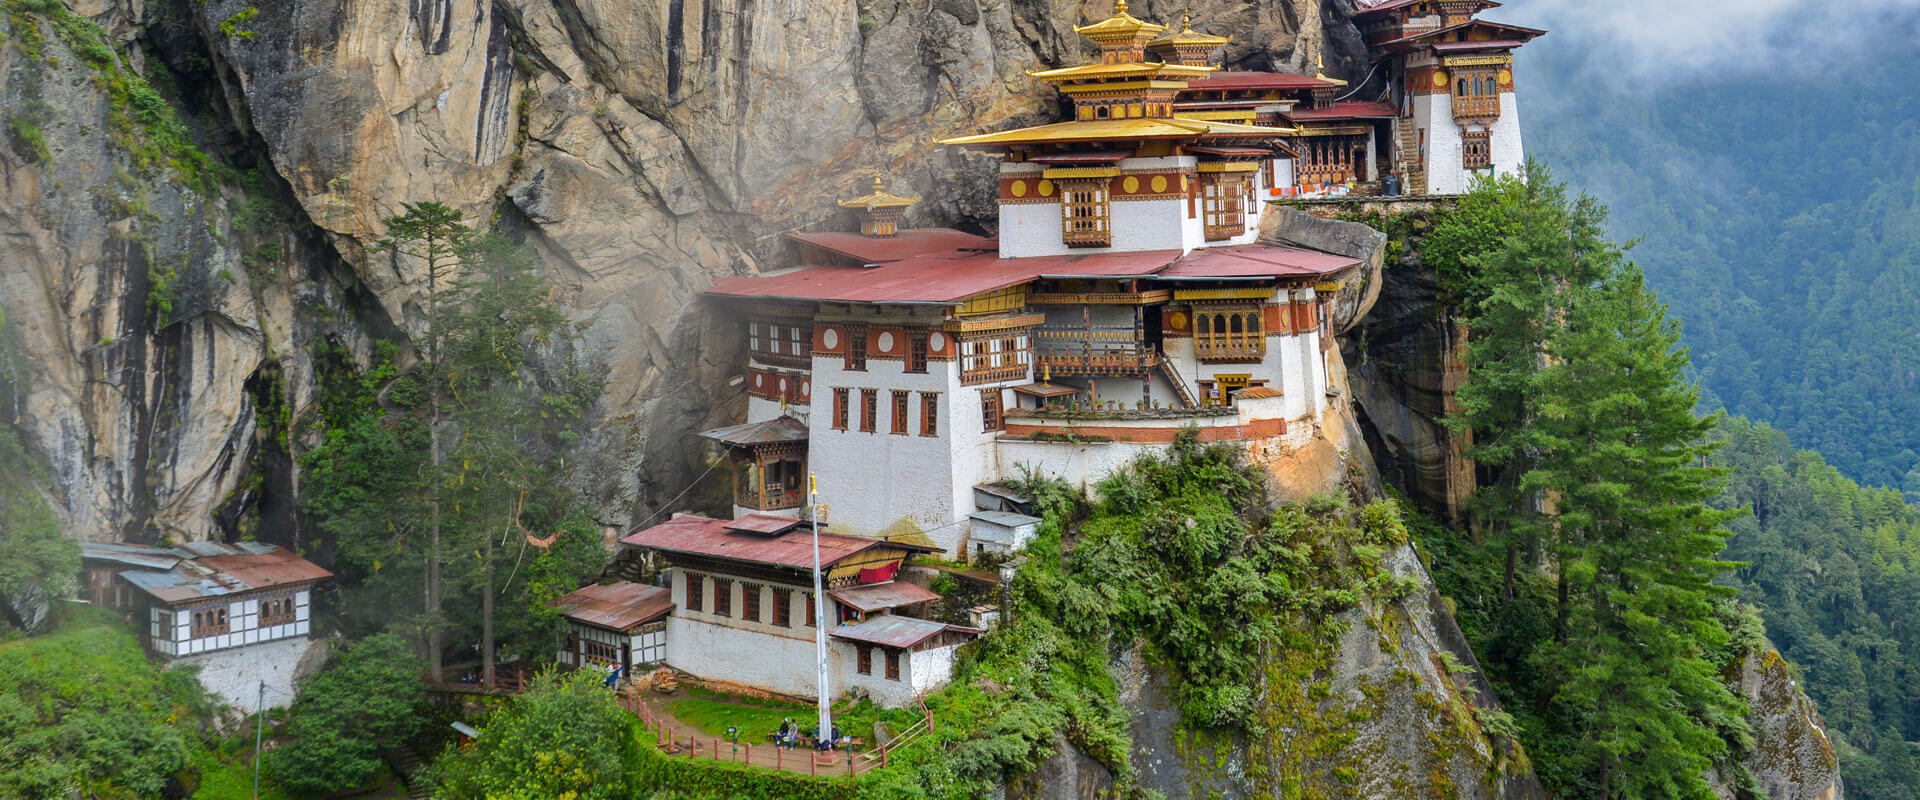 Tiger Nest in Paro, Bhutan. Budhist religious place in Bhutan. Tourist place in Bhutan. Plan Your Bhutan trip with Fortune Connect Holidays